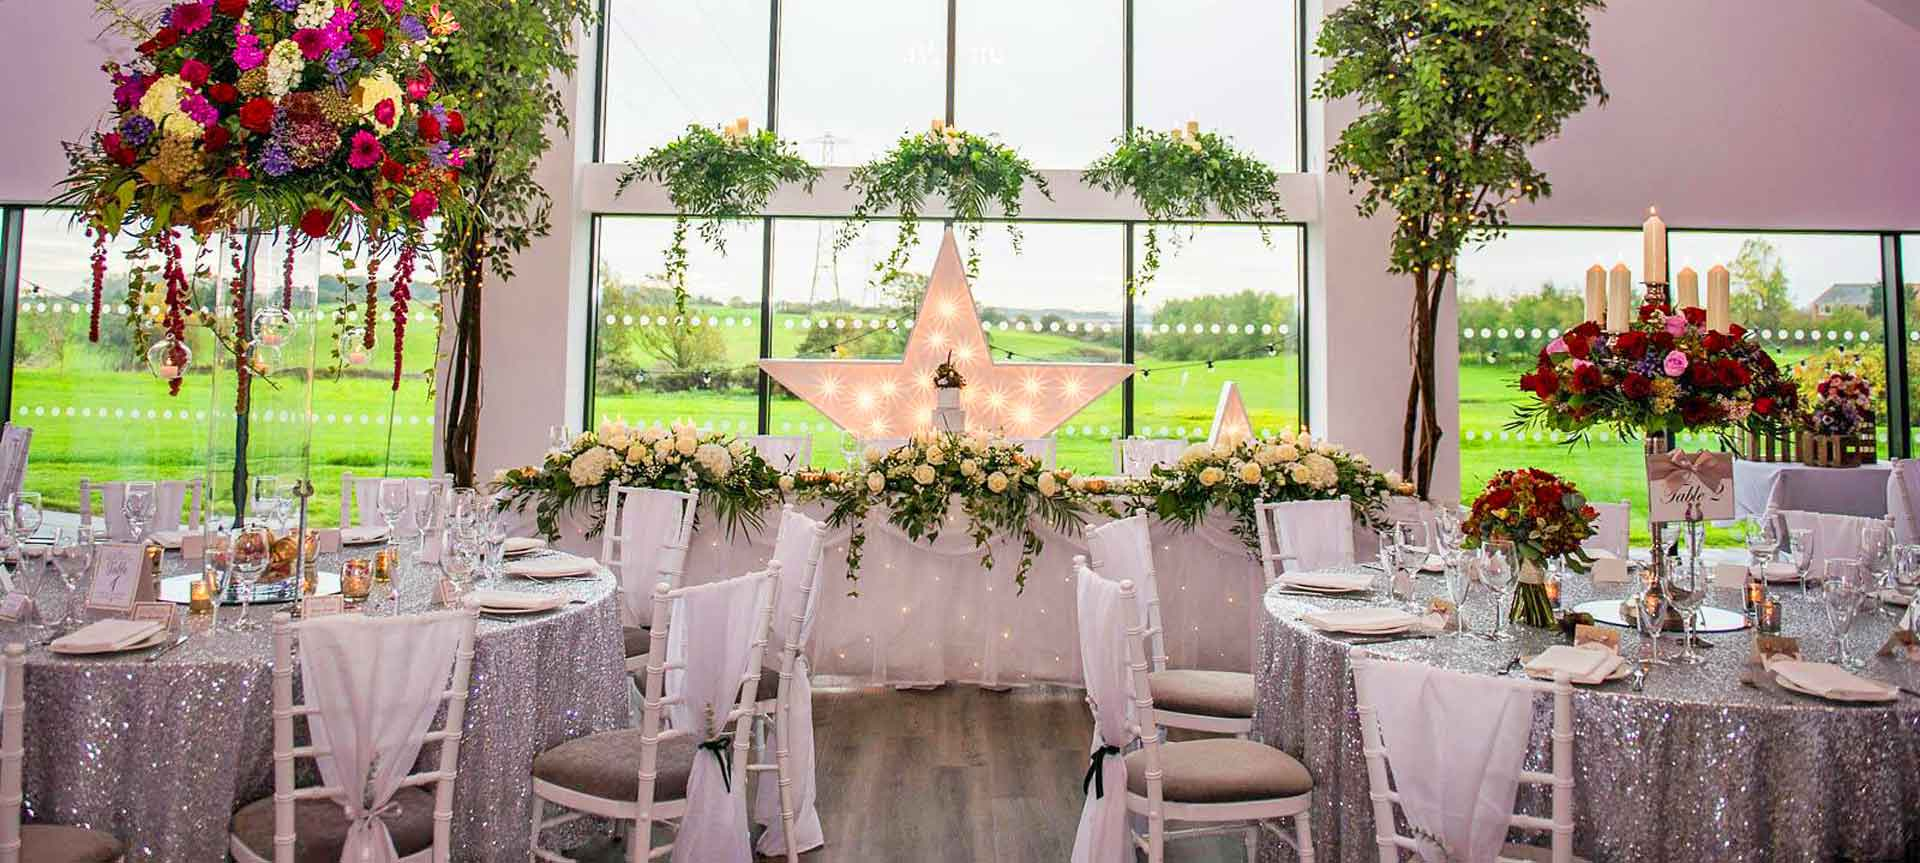 Sparkly silver wedding theme with white vertical drop chair covers - Weddings by Alexander & Co